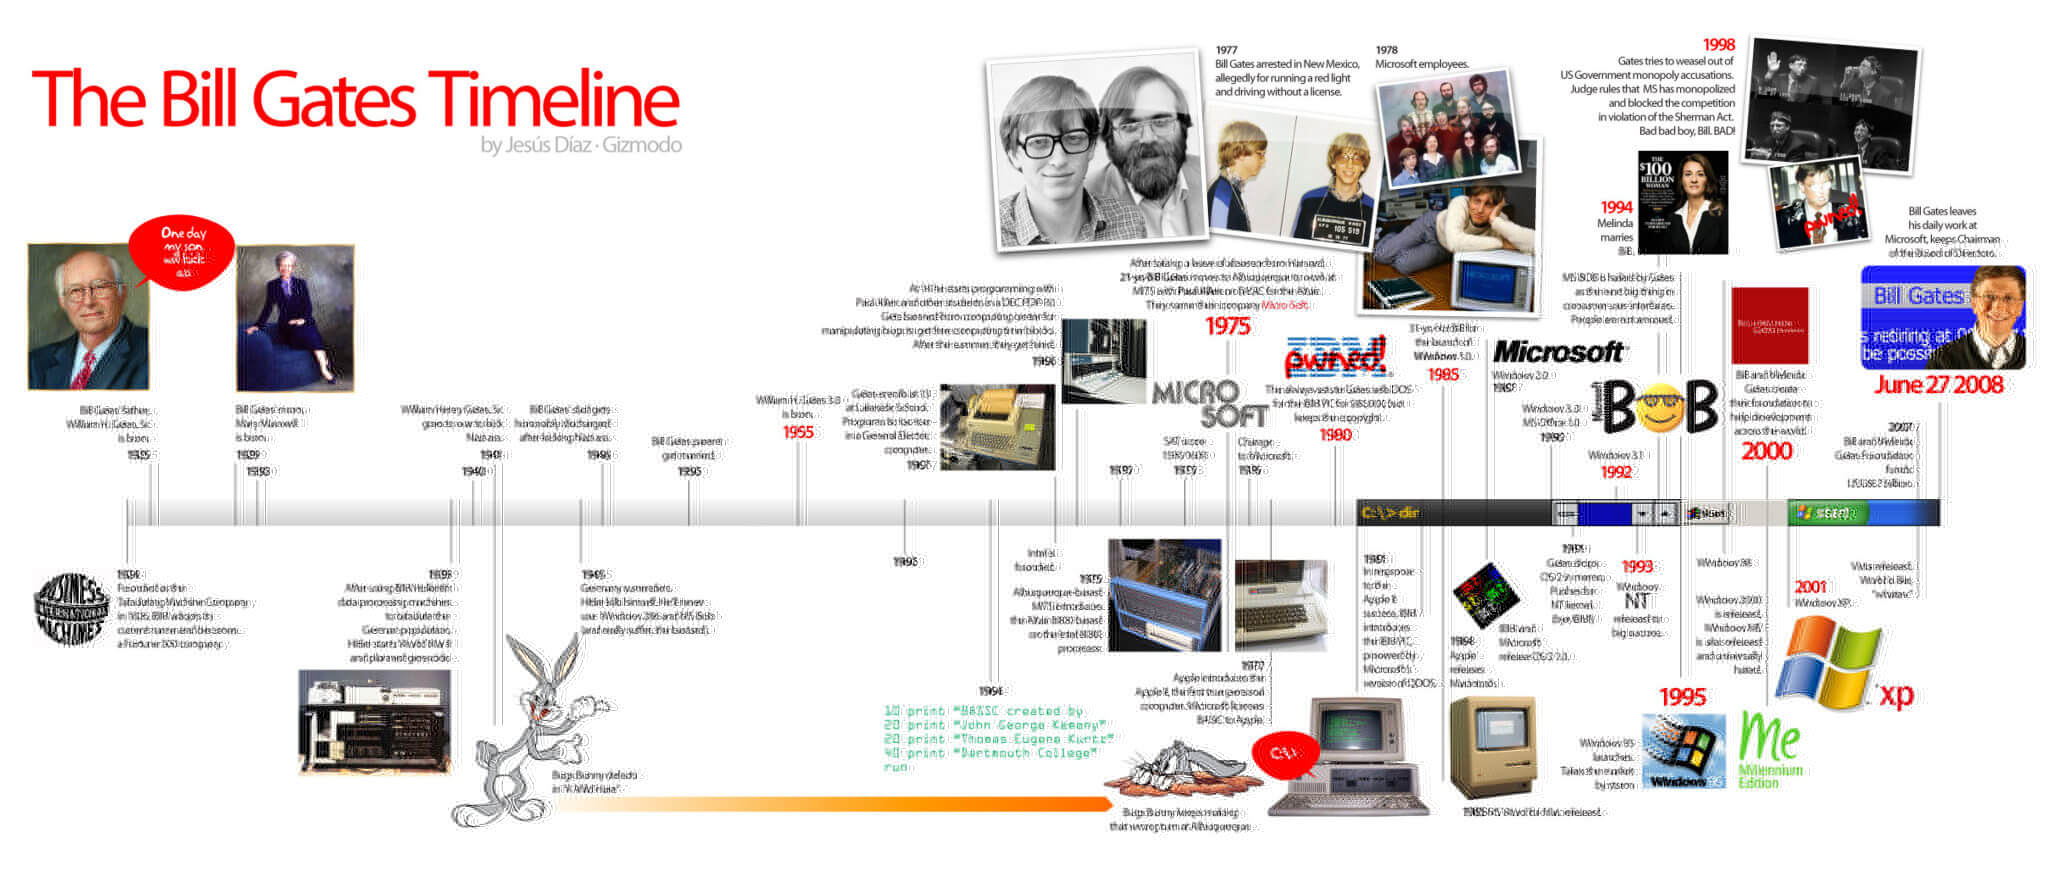 historical timeline charts related to computer  electronics